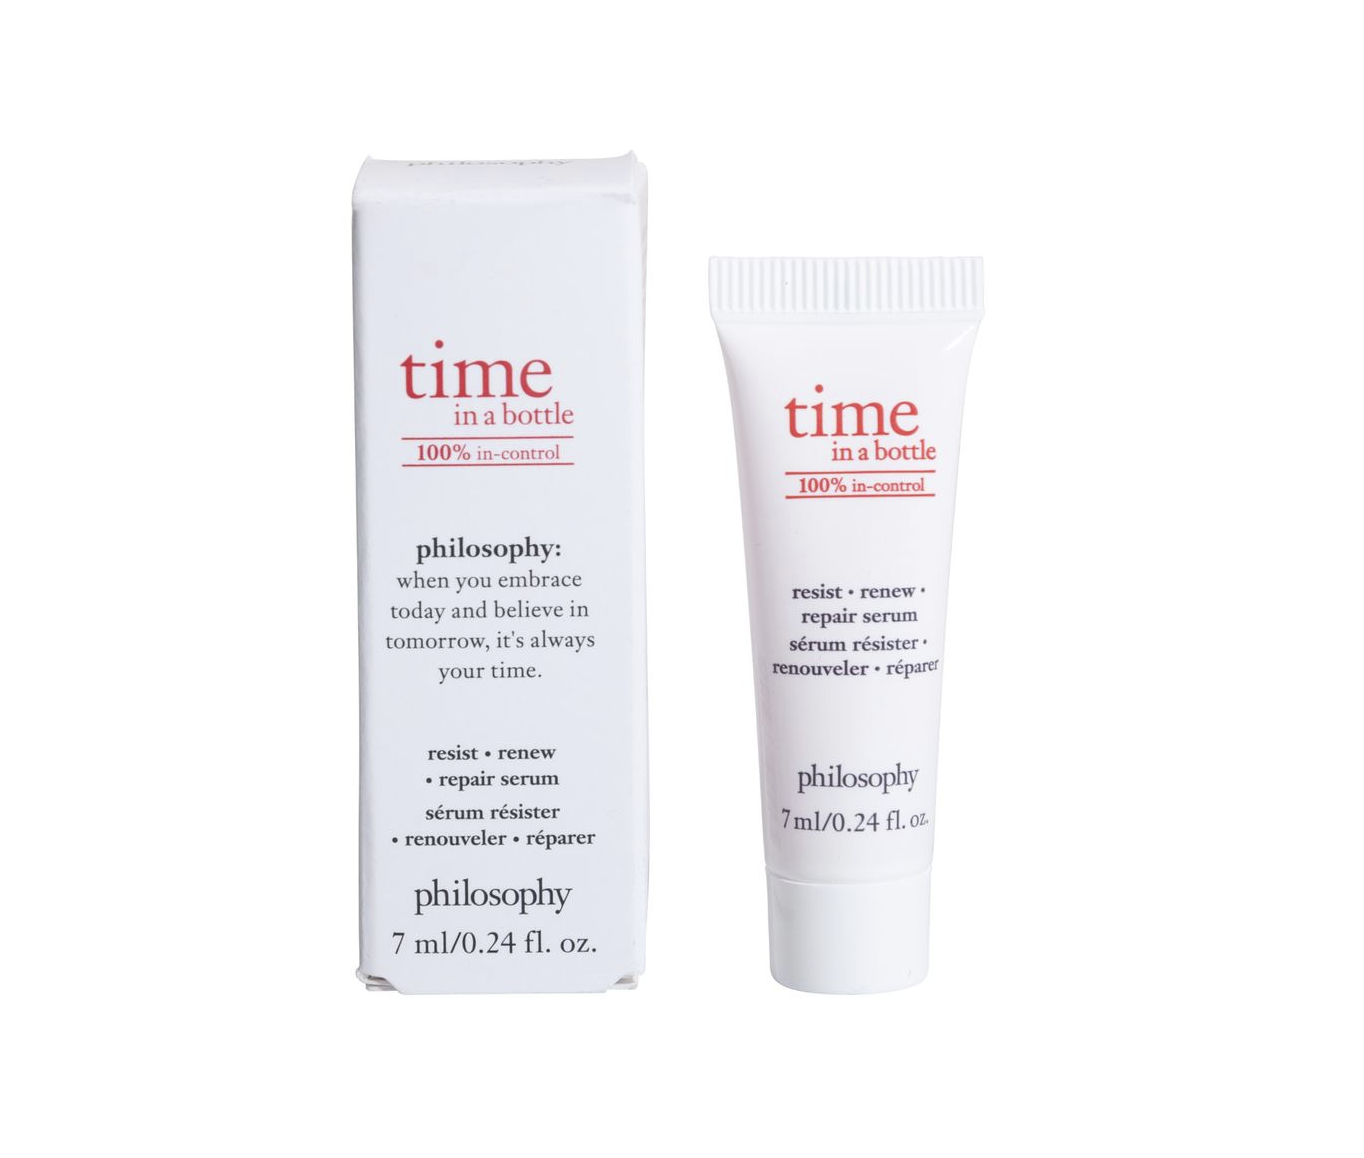 philosophy time in a bottle 100% in-control serum